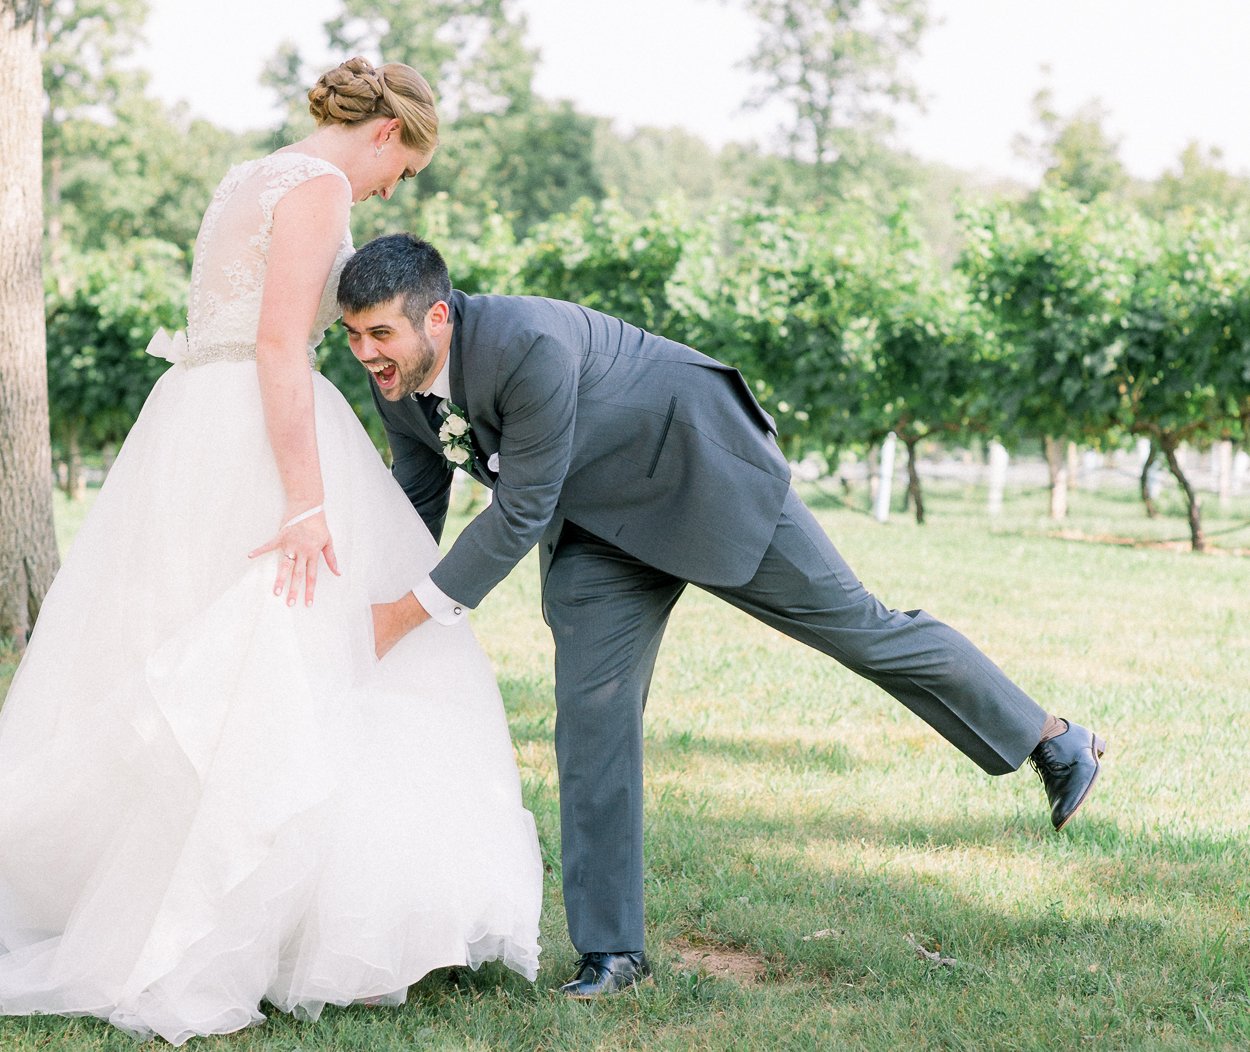 virginiawedding_vineyardwedding_LostCreekWinery_LeesburgWedding_youseephotography_Siegel (78).JPG